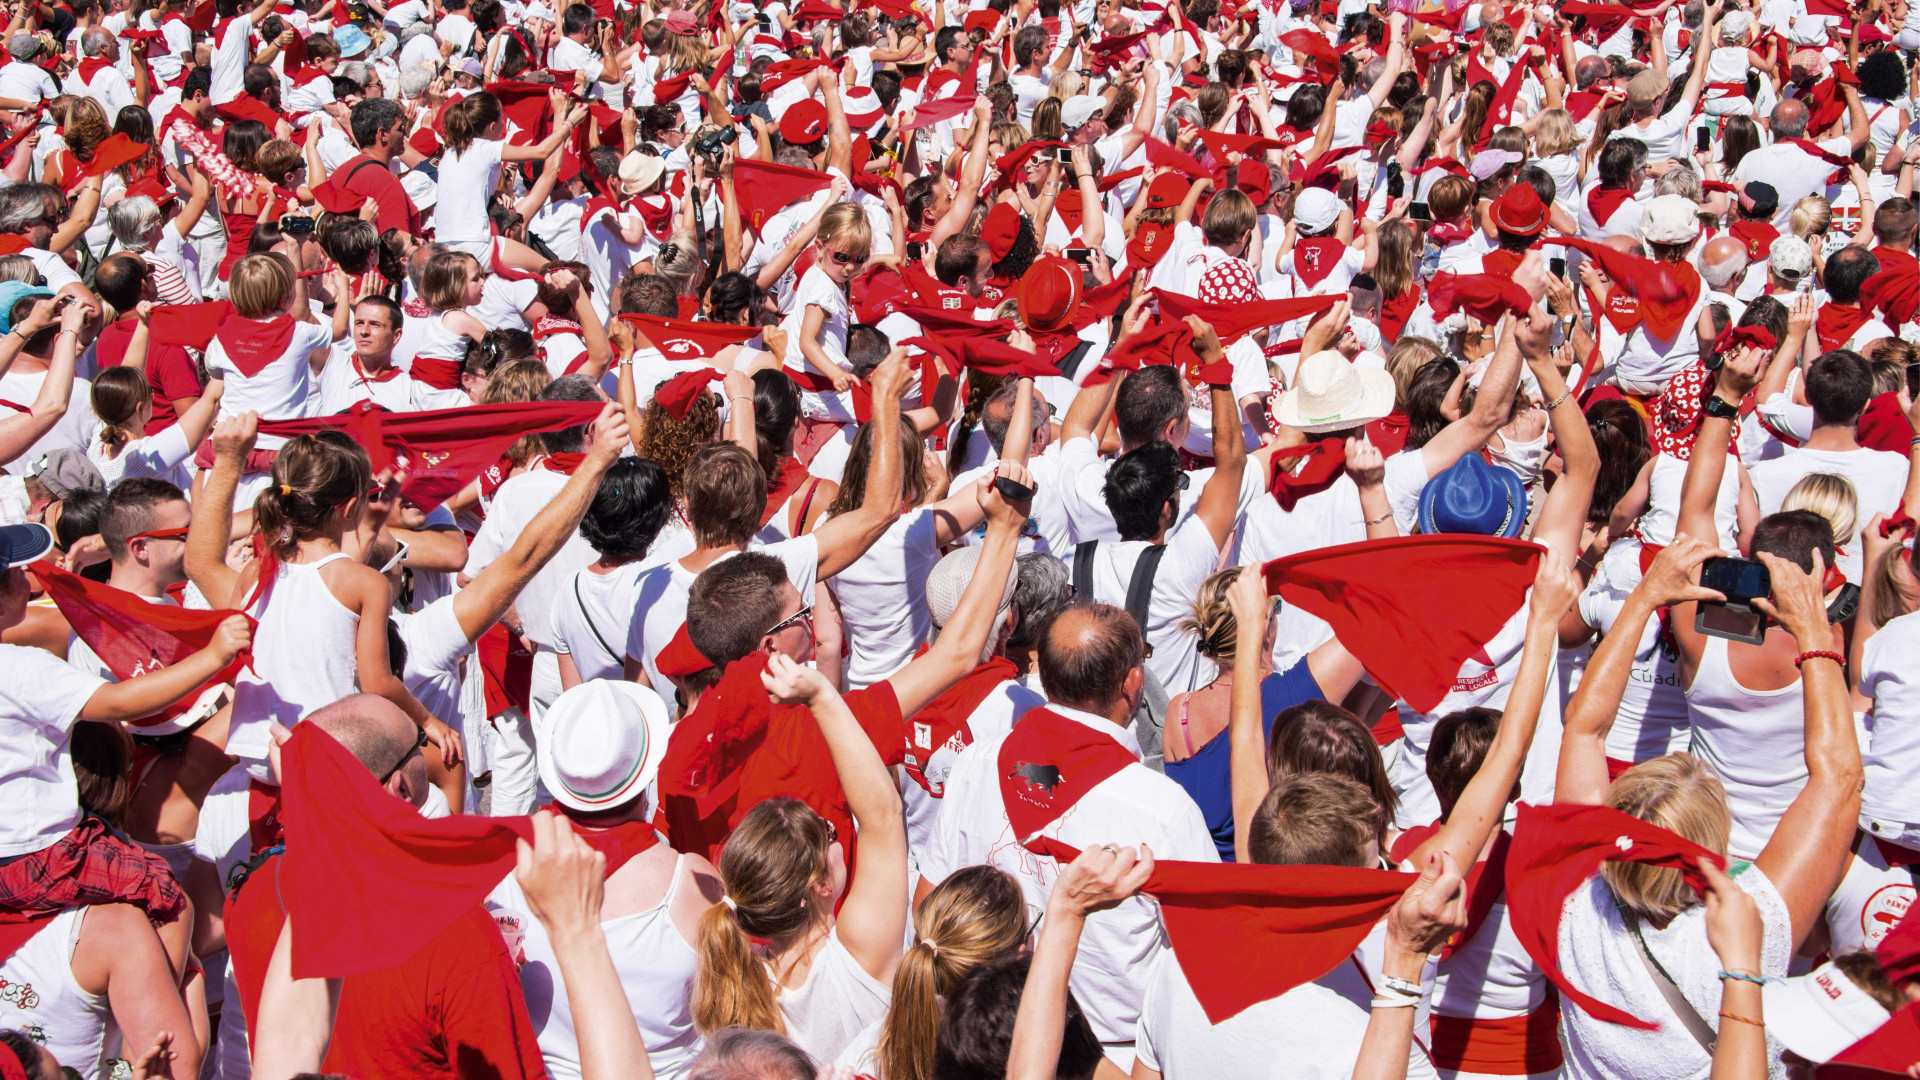 Millions of people gathering at the Fêtes de Bayonne in French Basque country